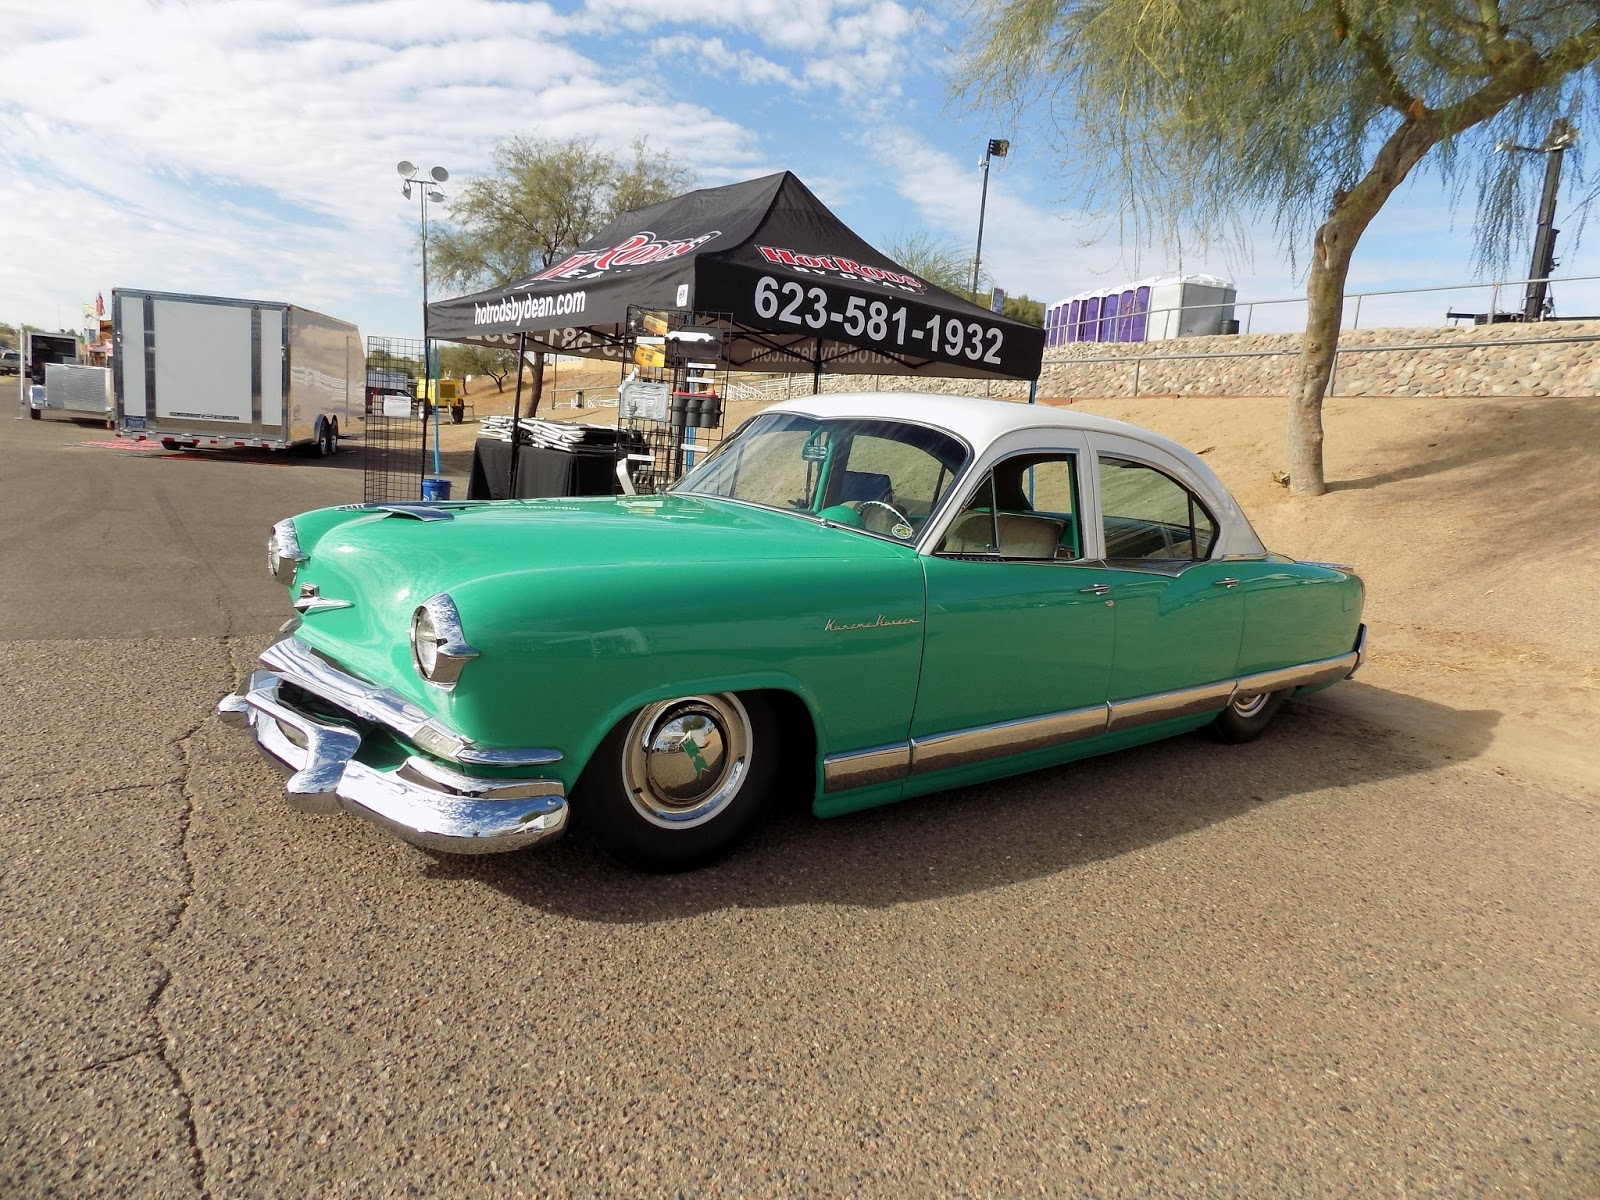 Rons Hot Rods GOOD GUYS SCOTTSDALE - When is the good guys car show in scottsdale